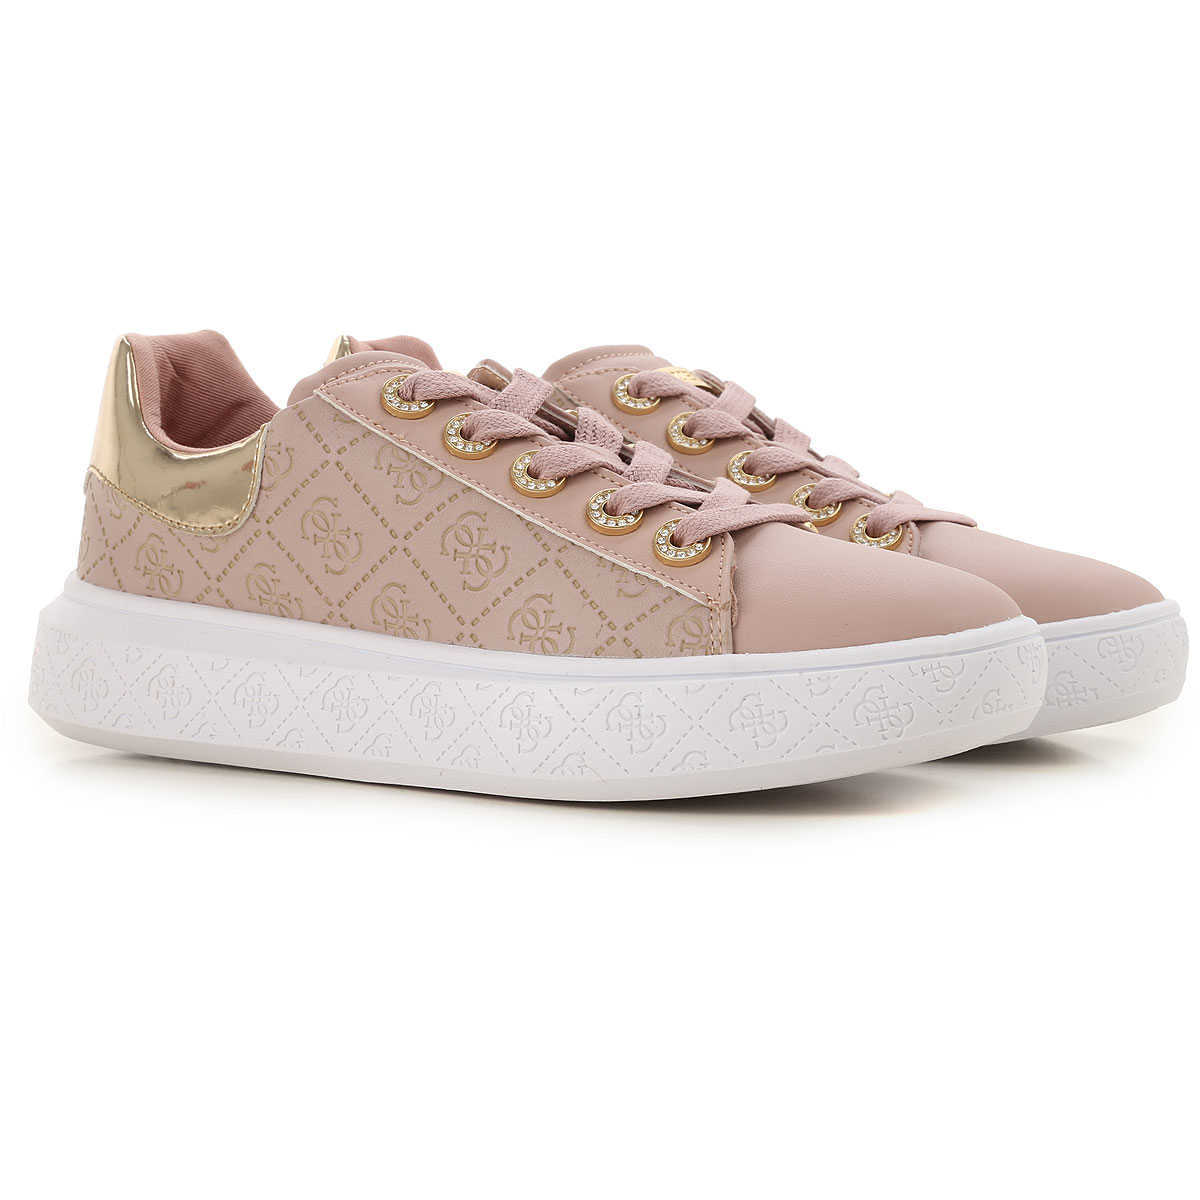 Guess Sneakers for Women On Sale Pink - GOOFASH